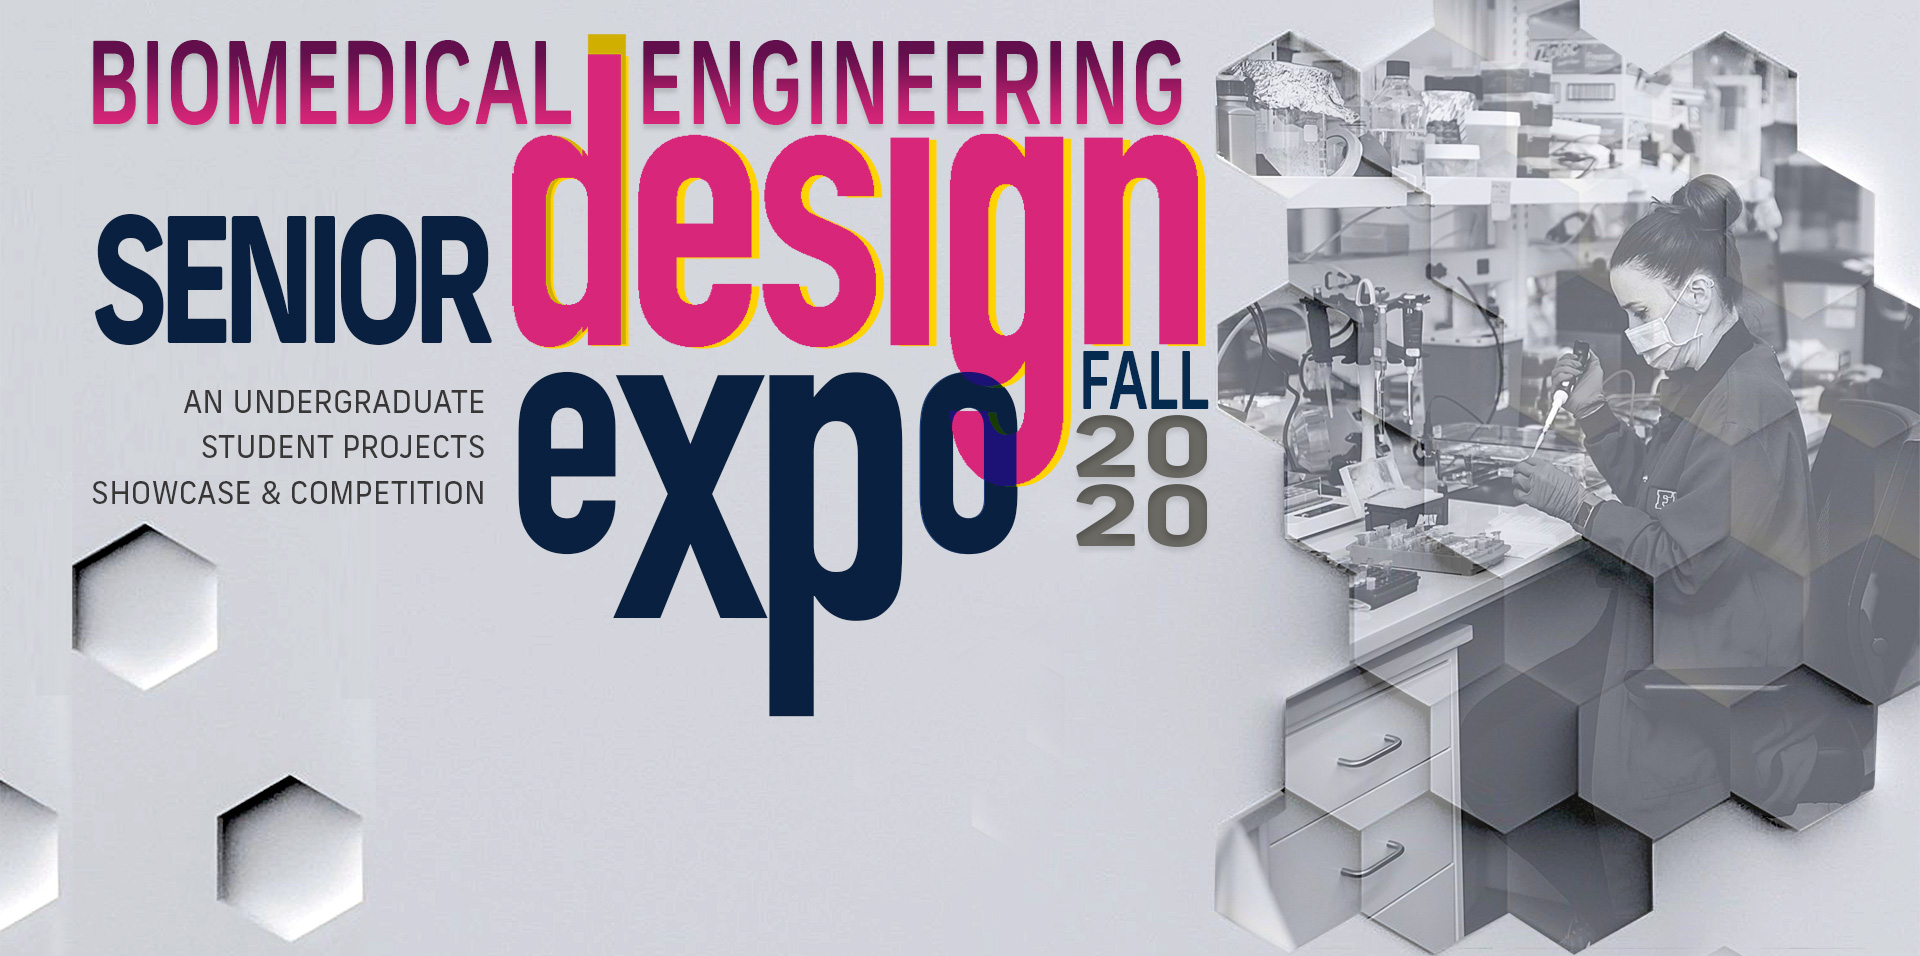 Biomedical Engineering Senior Design Project Expo Fall 2020